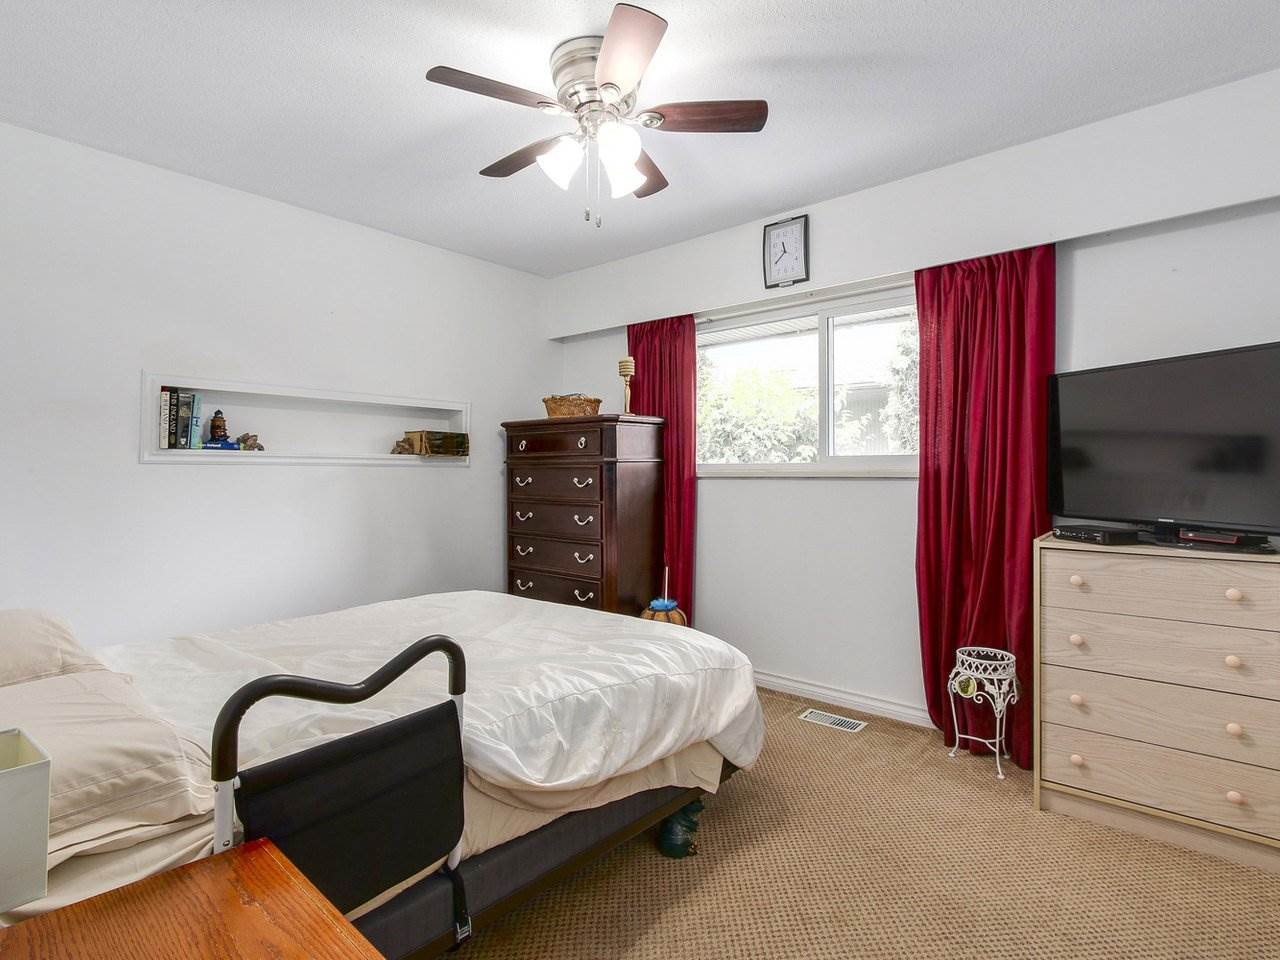 Photo 10: C 5068 47A Avenue in Delta: Ladner Elementary House 1/2 Duplex for sale (Ladner)  : MLS(r) # R2179730